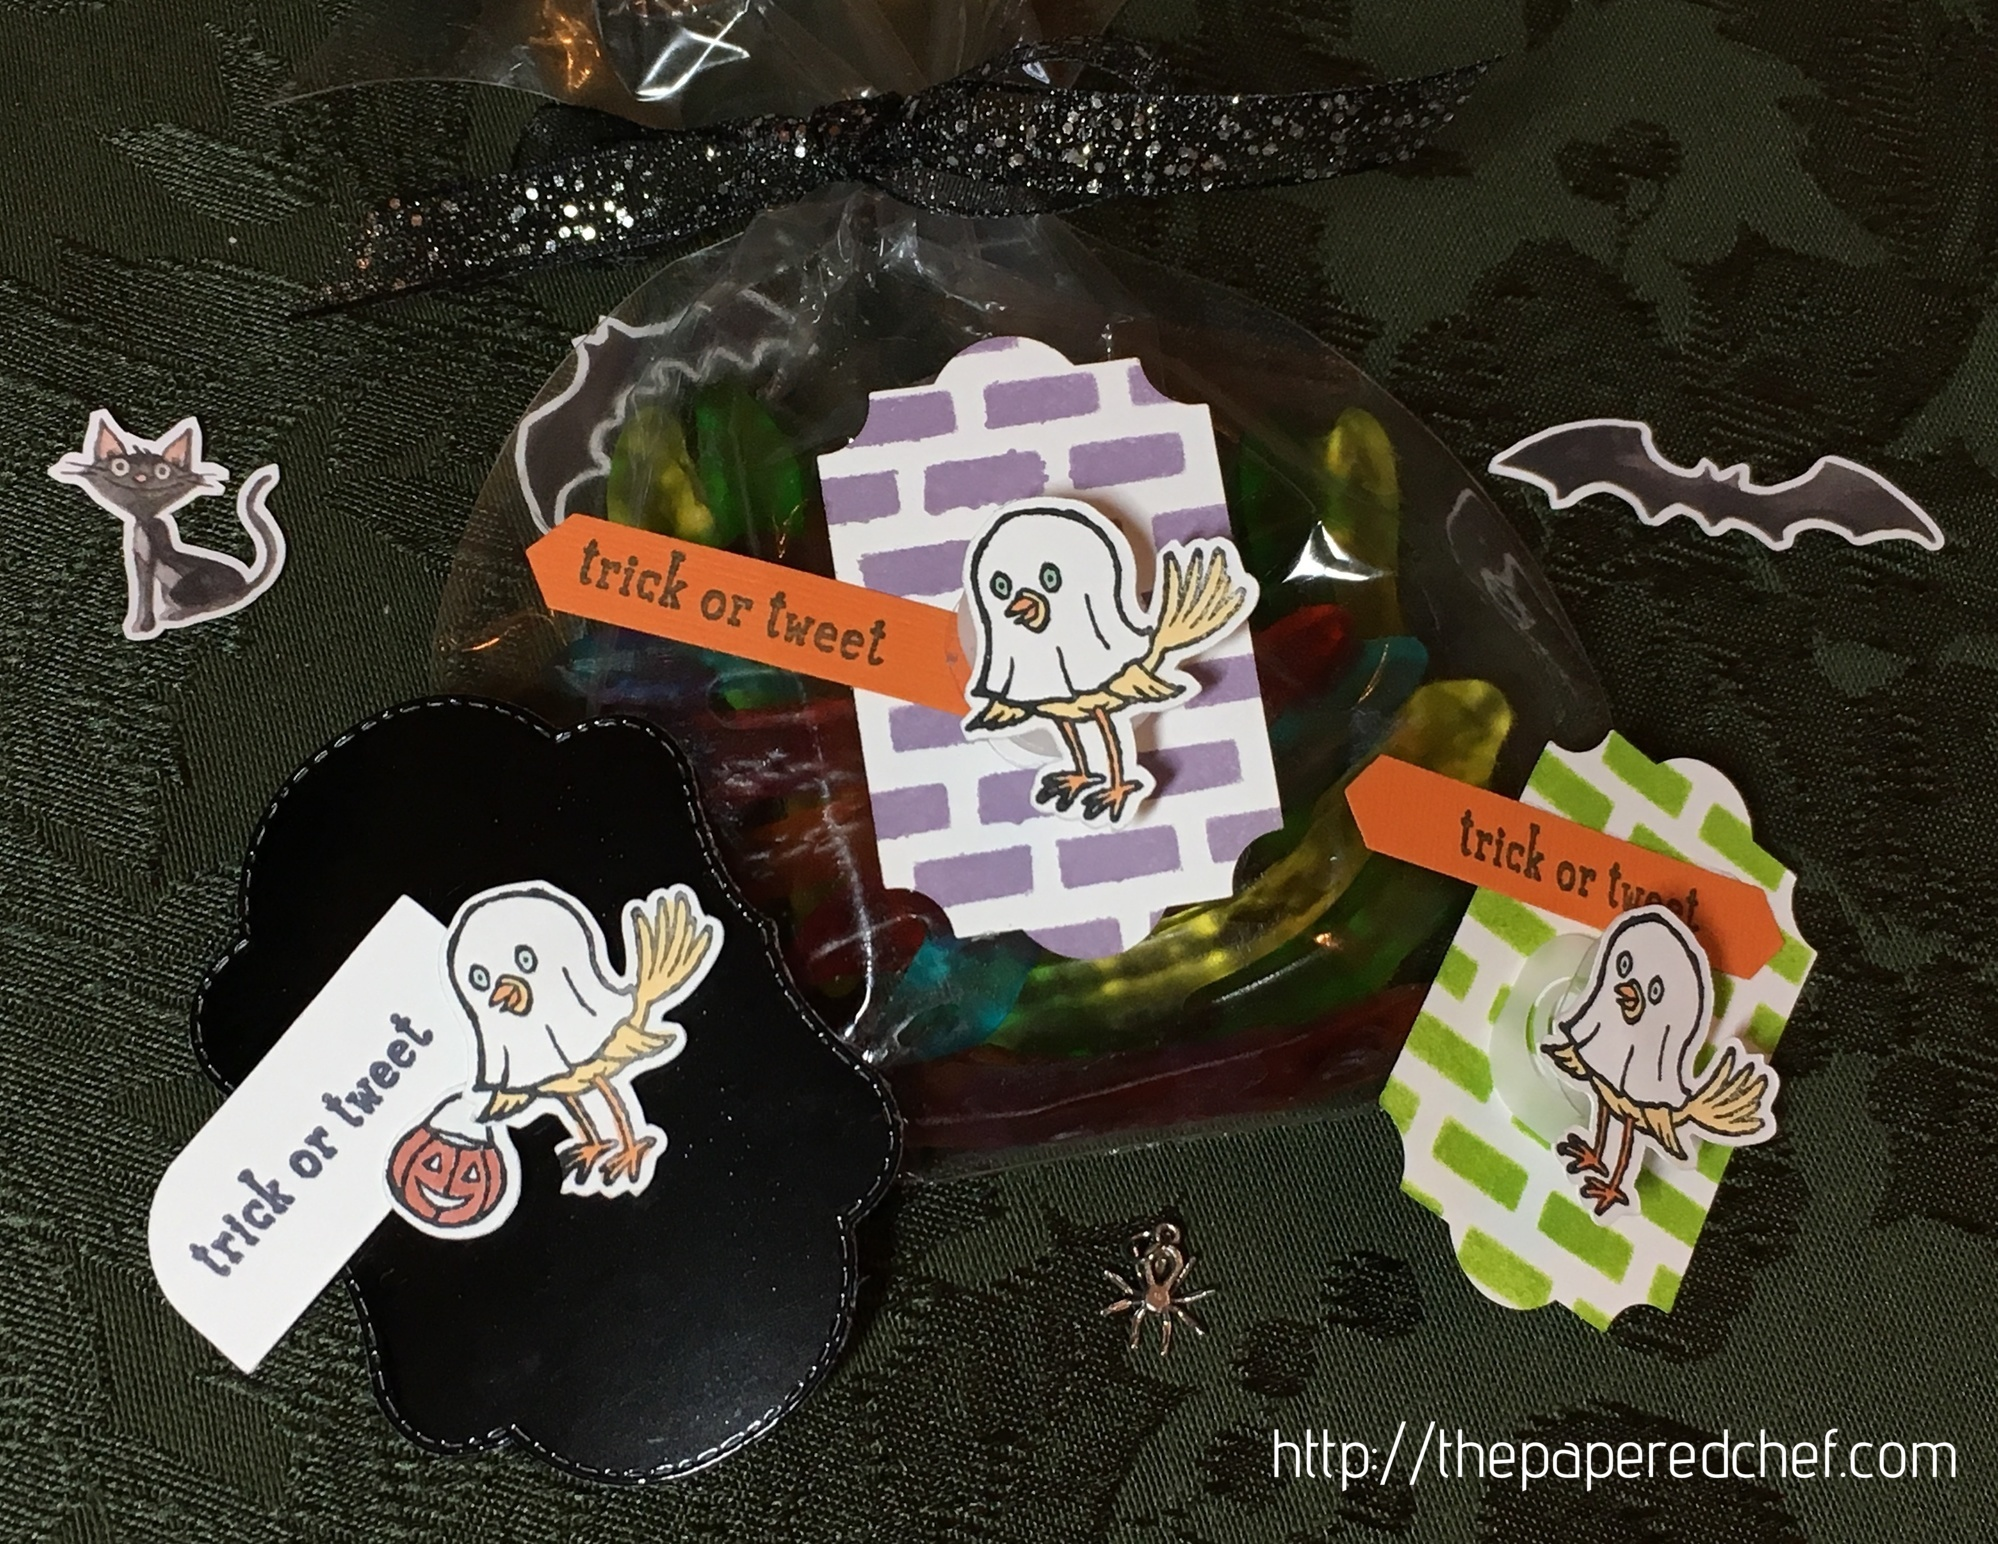 Trick or Tweet by Stampin' Up